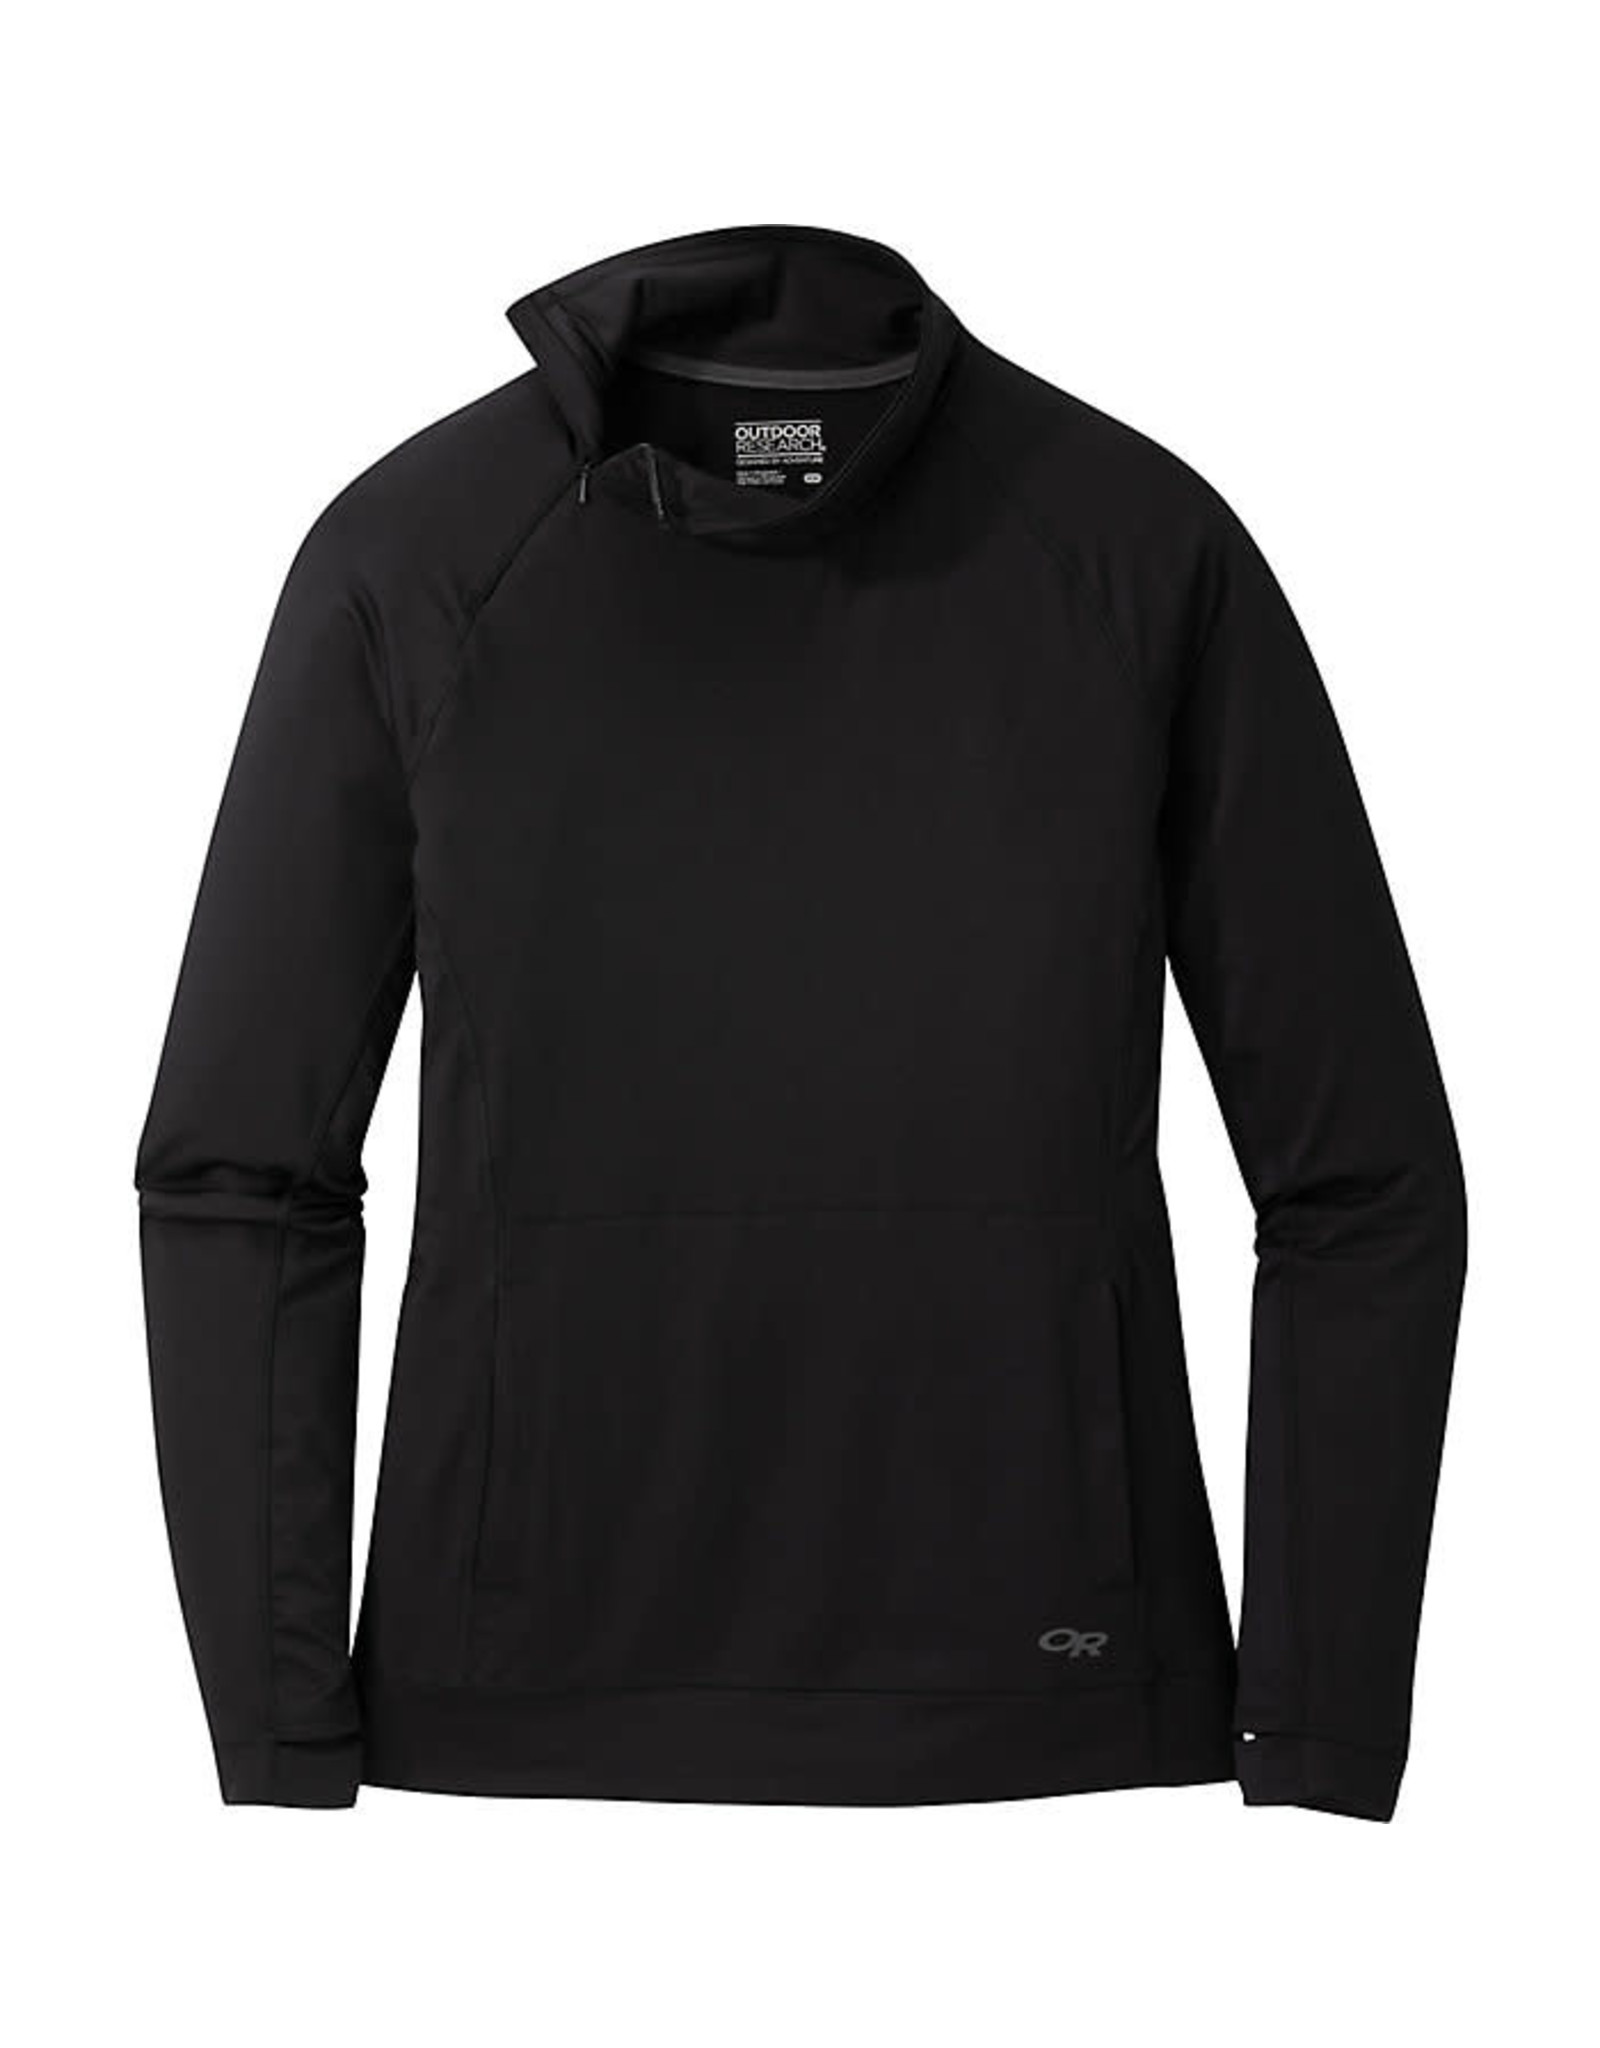 Outdoor Research Outdoor Research Wmn's Chain Reaction Quarter Zip Black L